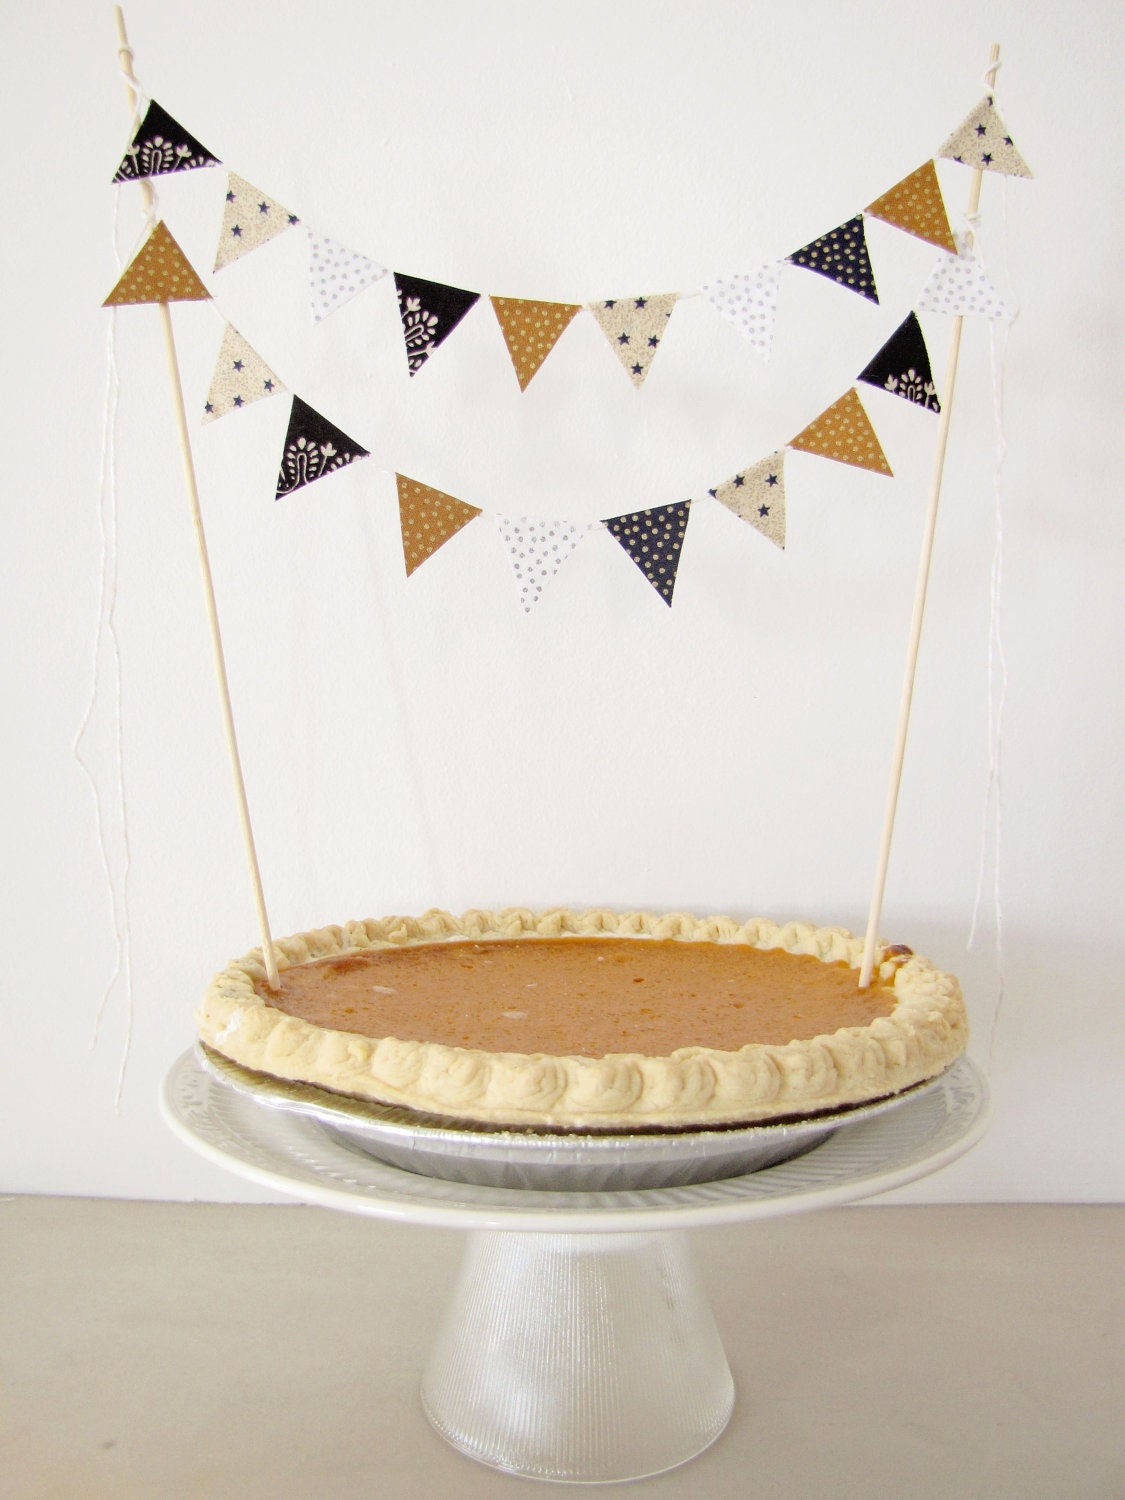 "Fabric Cake Bunting Decoration - Cake Topper - Wedding, Birthday Party, Shower - in ""New Years Eve"" black, gold, white, stars, silver dots"